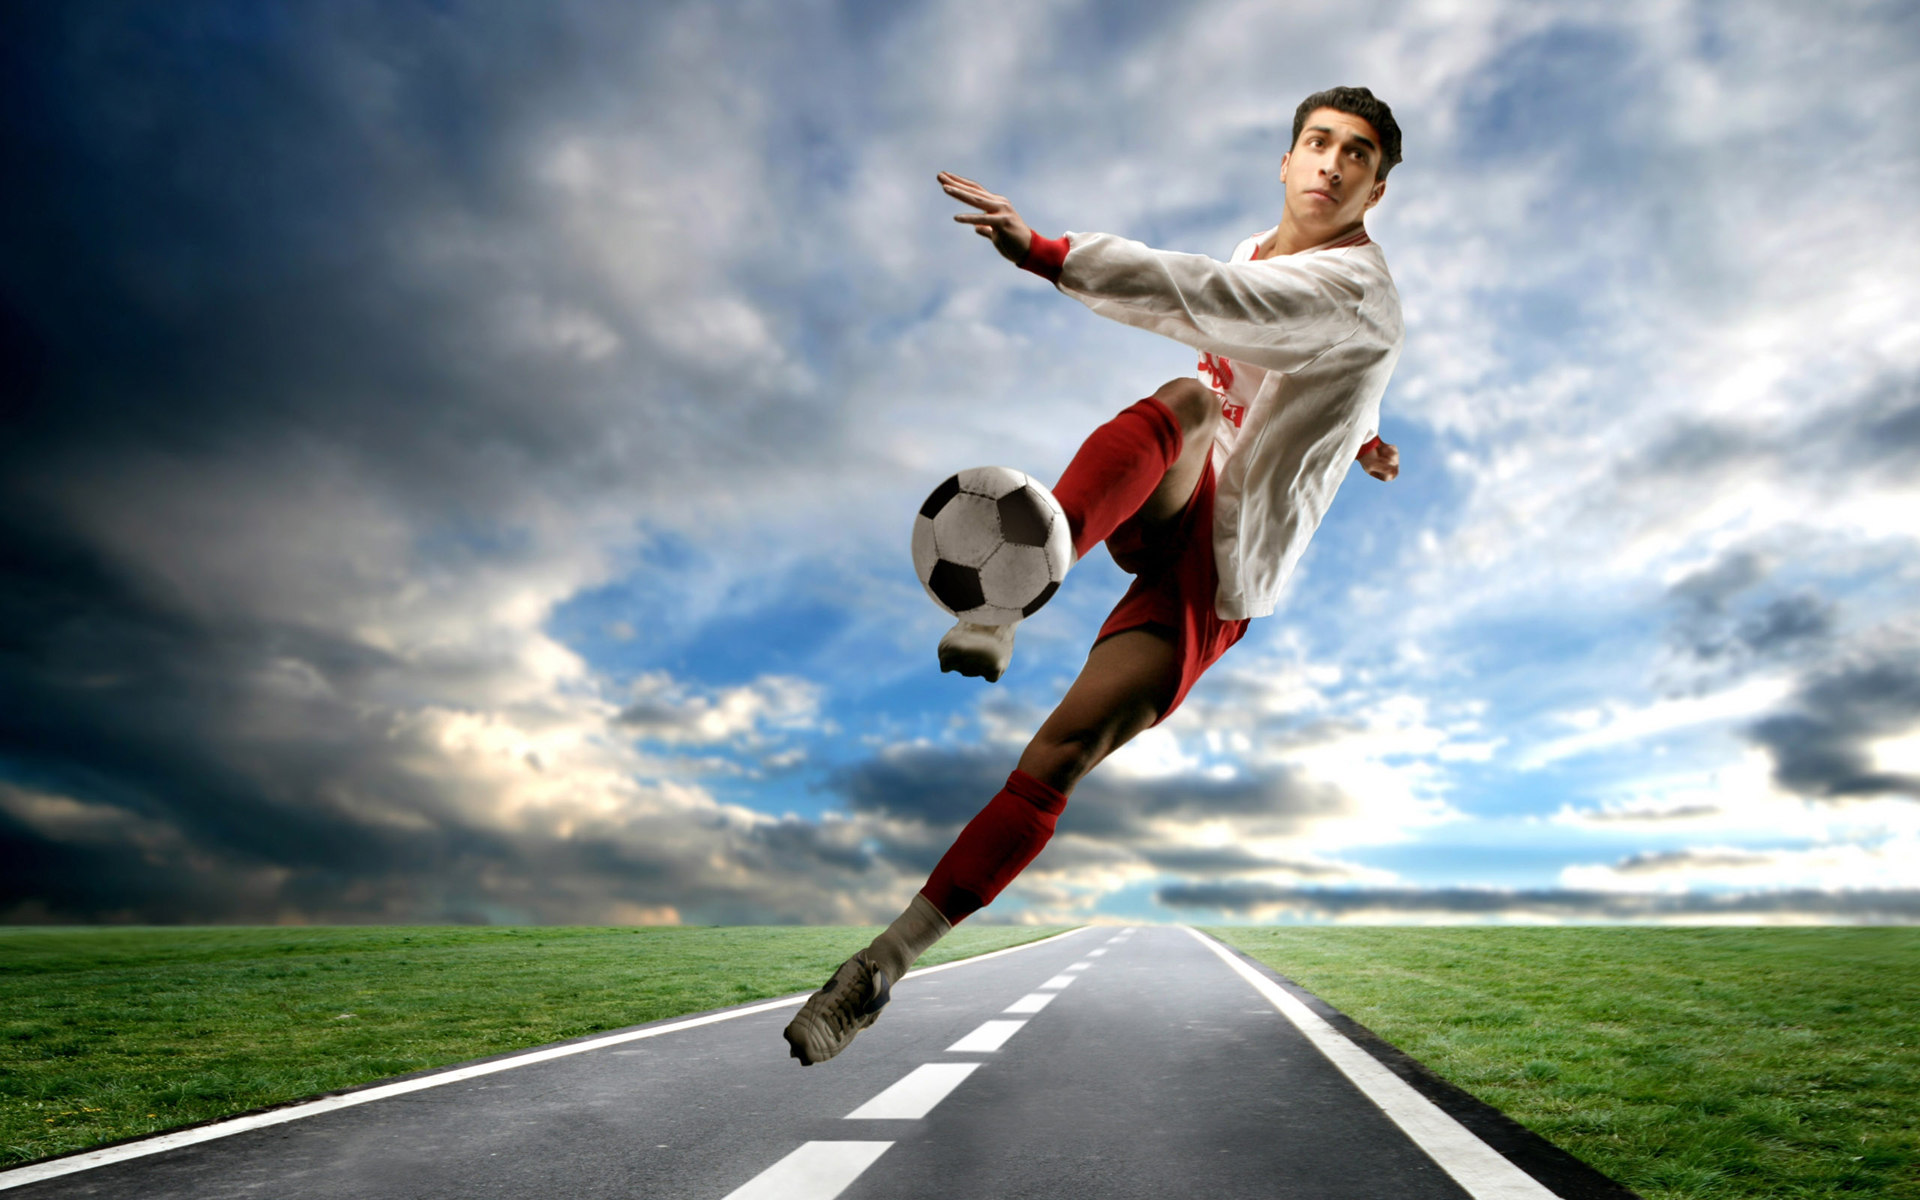 hd soccer 27 wallpaper you are viewing the sports wallpaper named hd 1920x1200